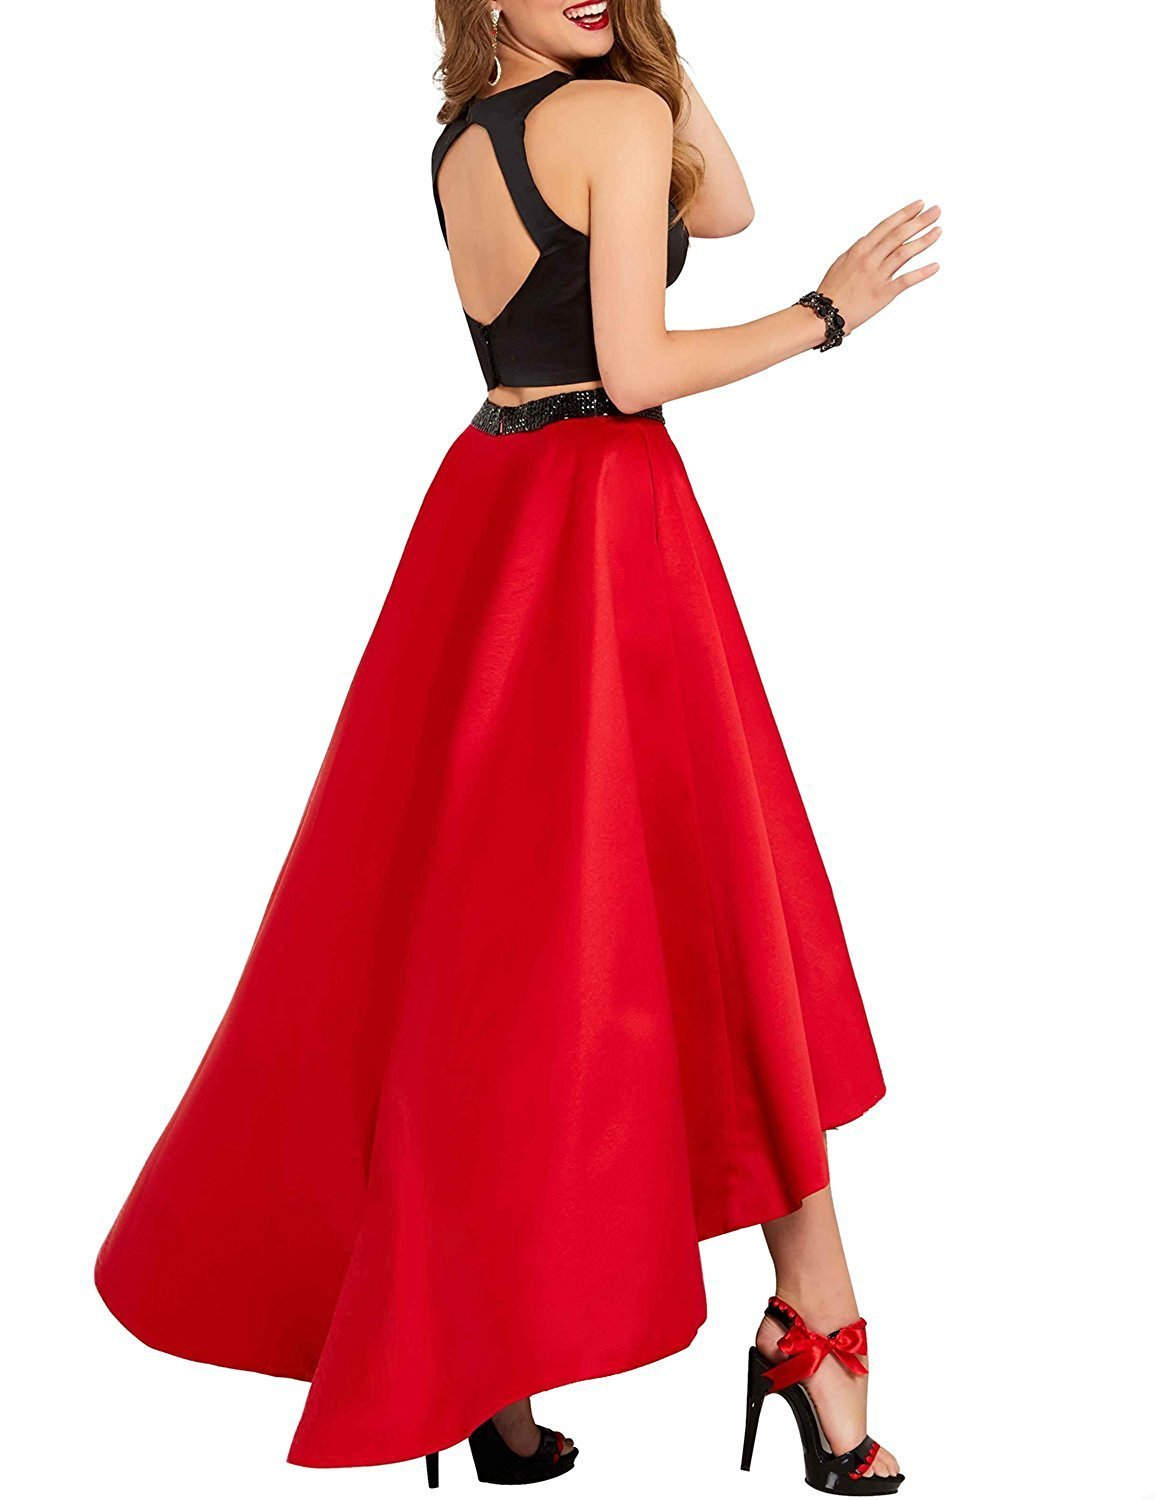 Women's Crew Neck 2 Pieces High Low Prom Dress Satin Beading A-Line Evening Gown